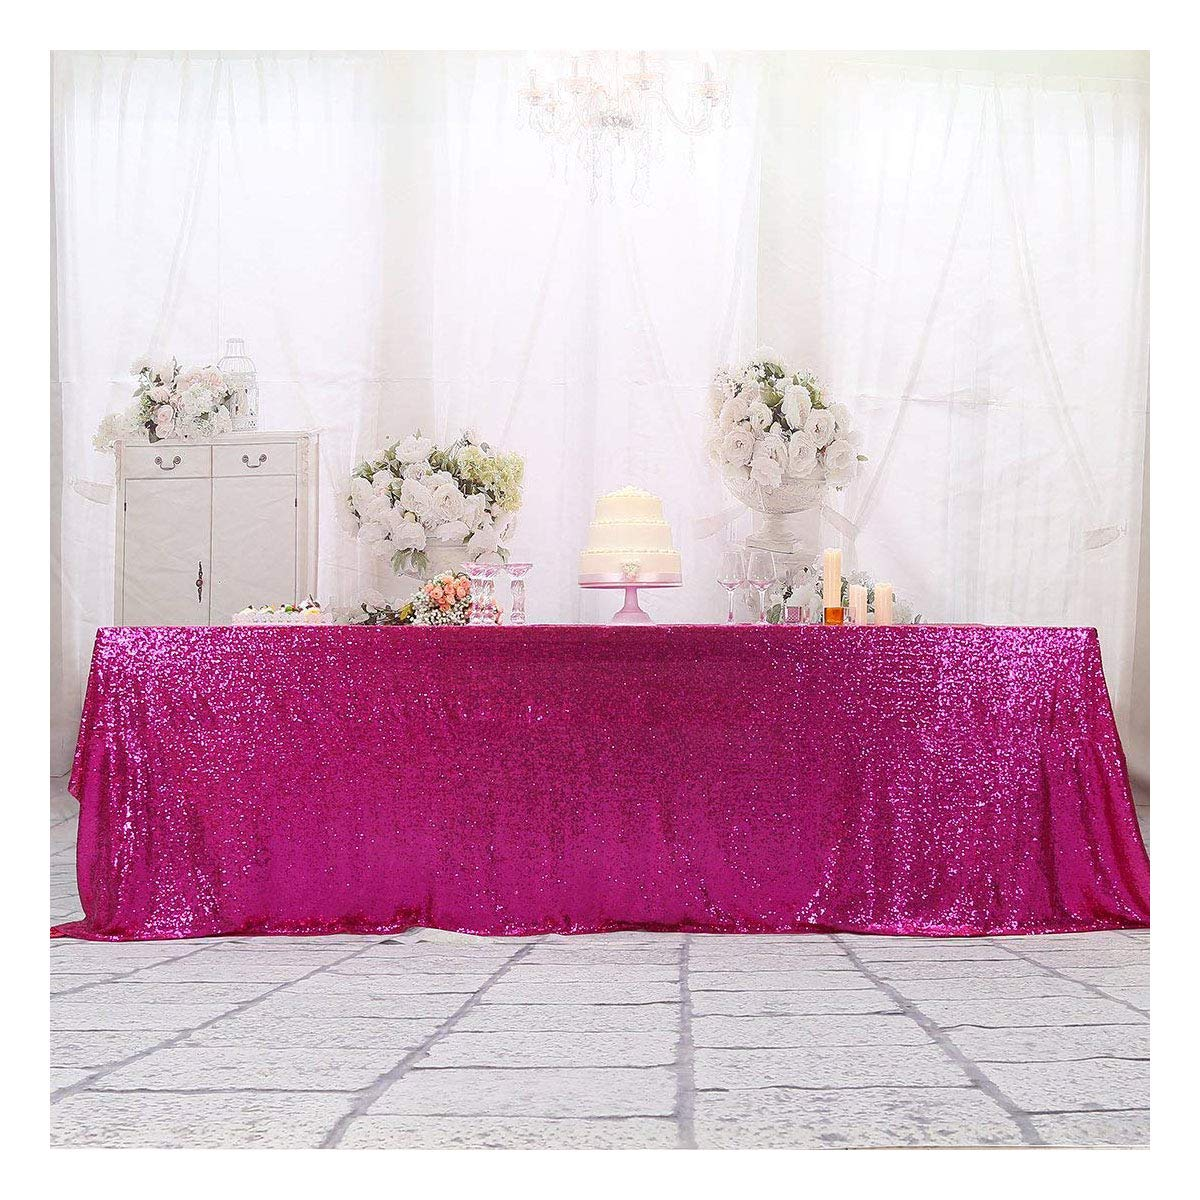 3e Home 60×120'' Rectangle Sequin Tablecloth for Party Cake Dessert Table Exhibition Events, Fuchsia